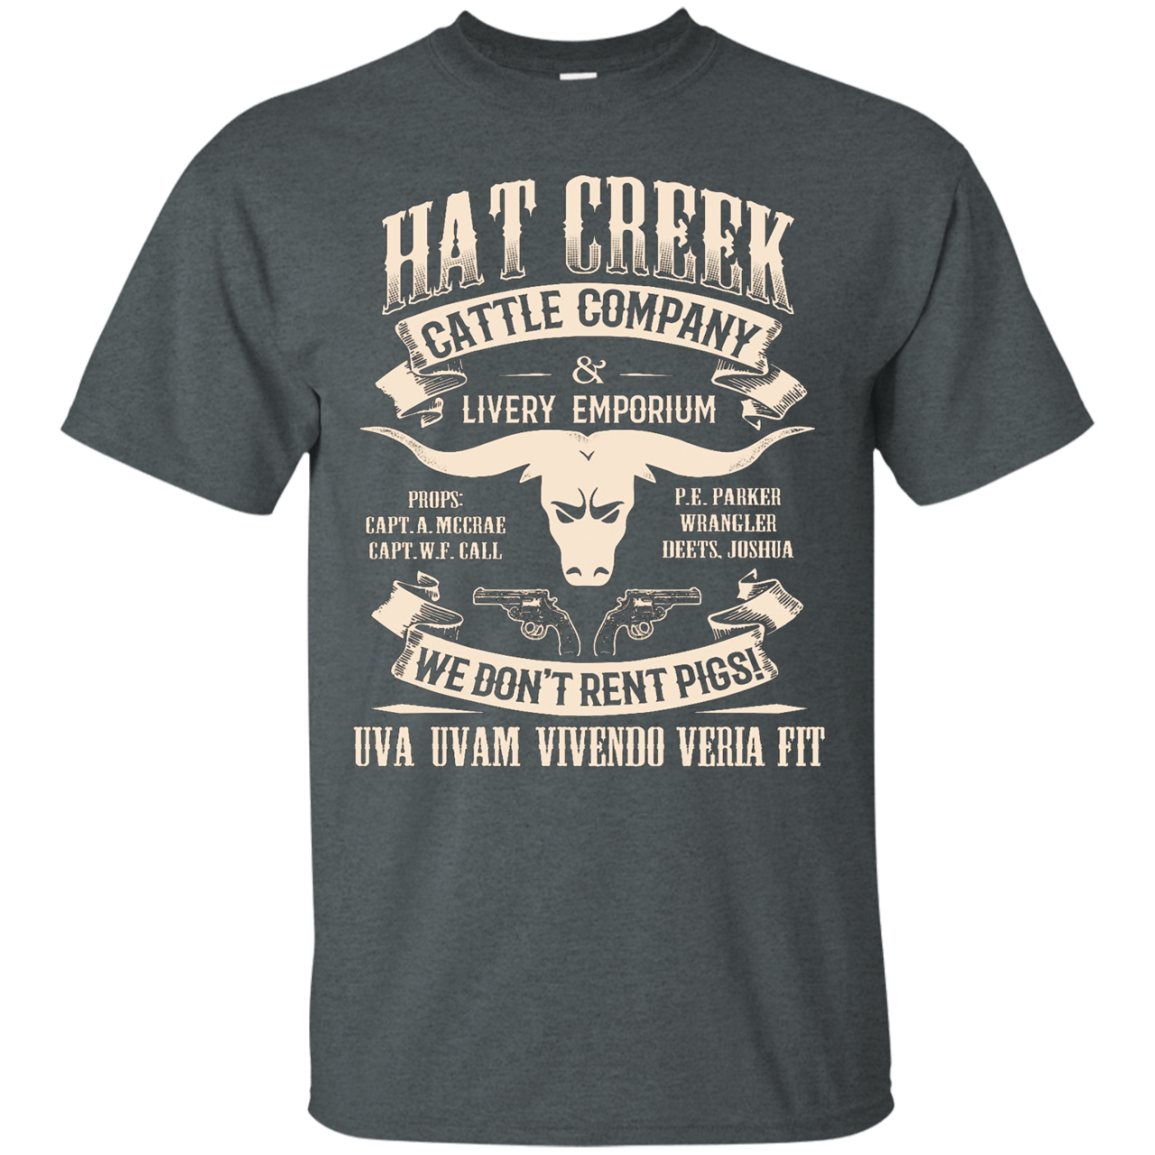 Hat creek cattle company hoodie